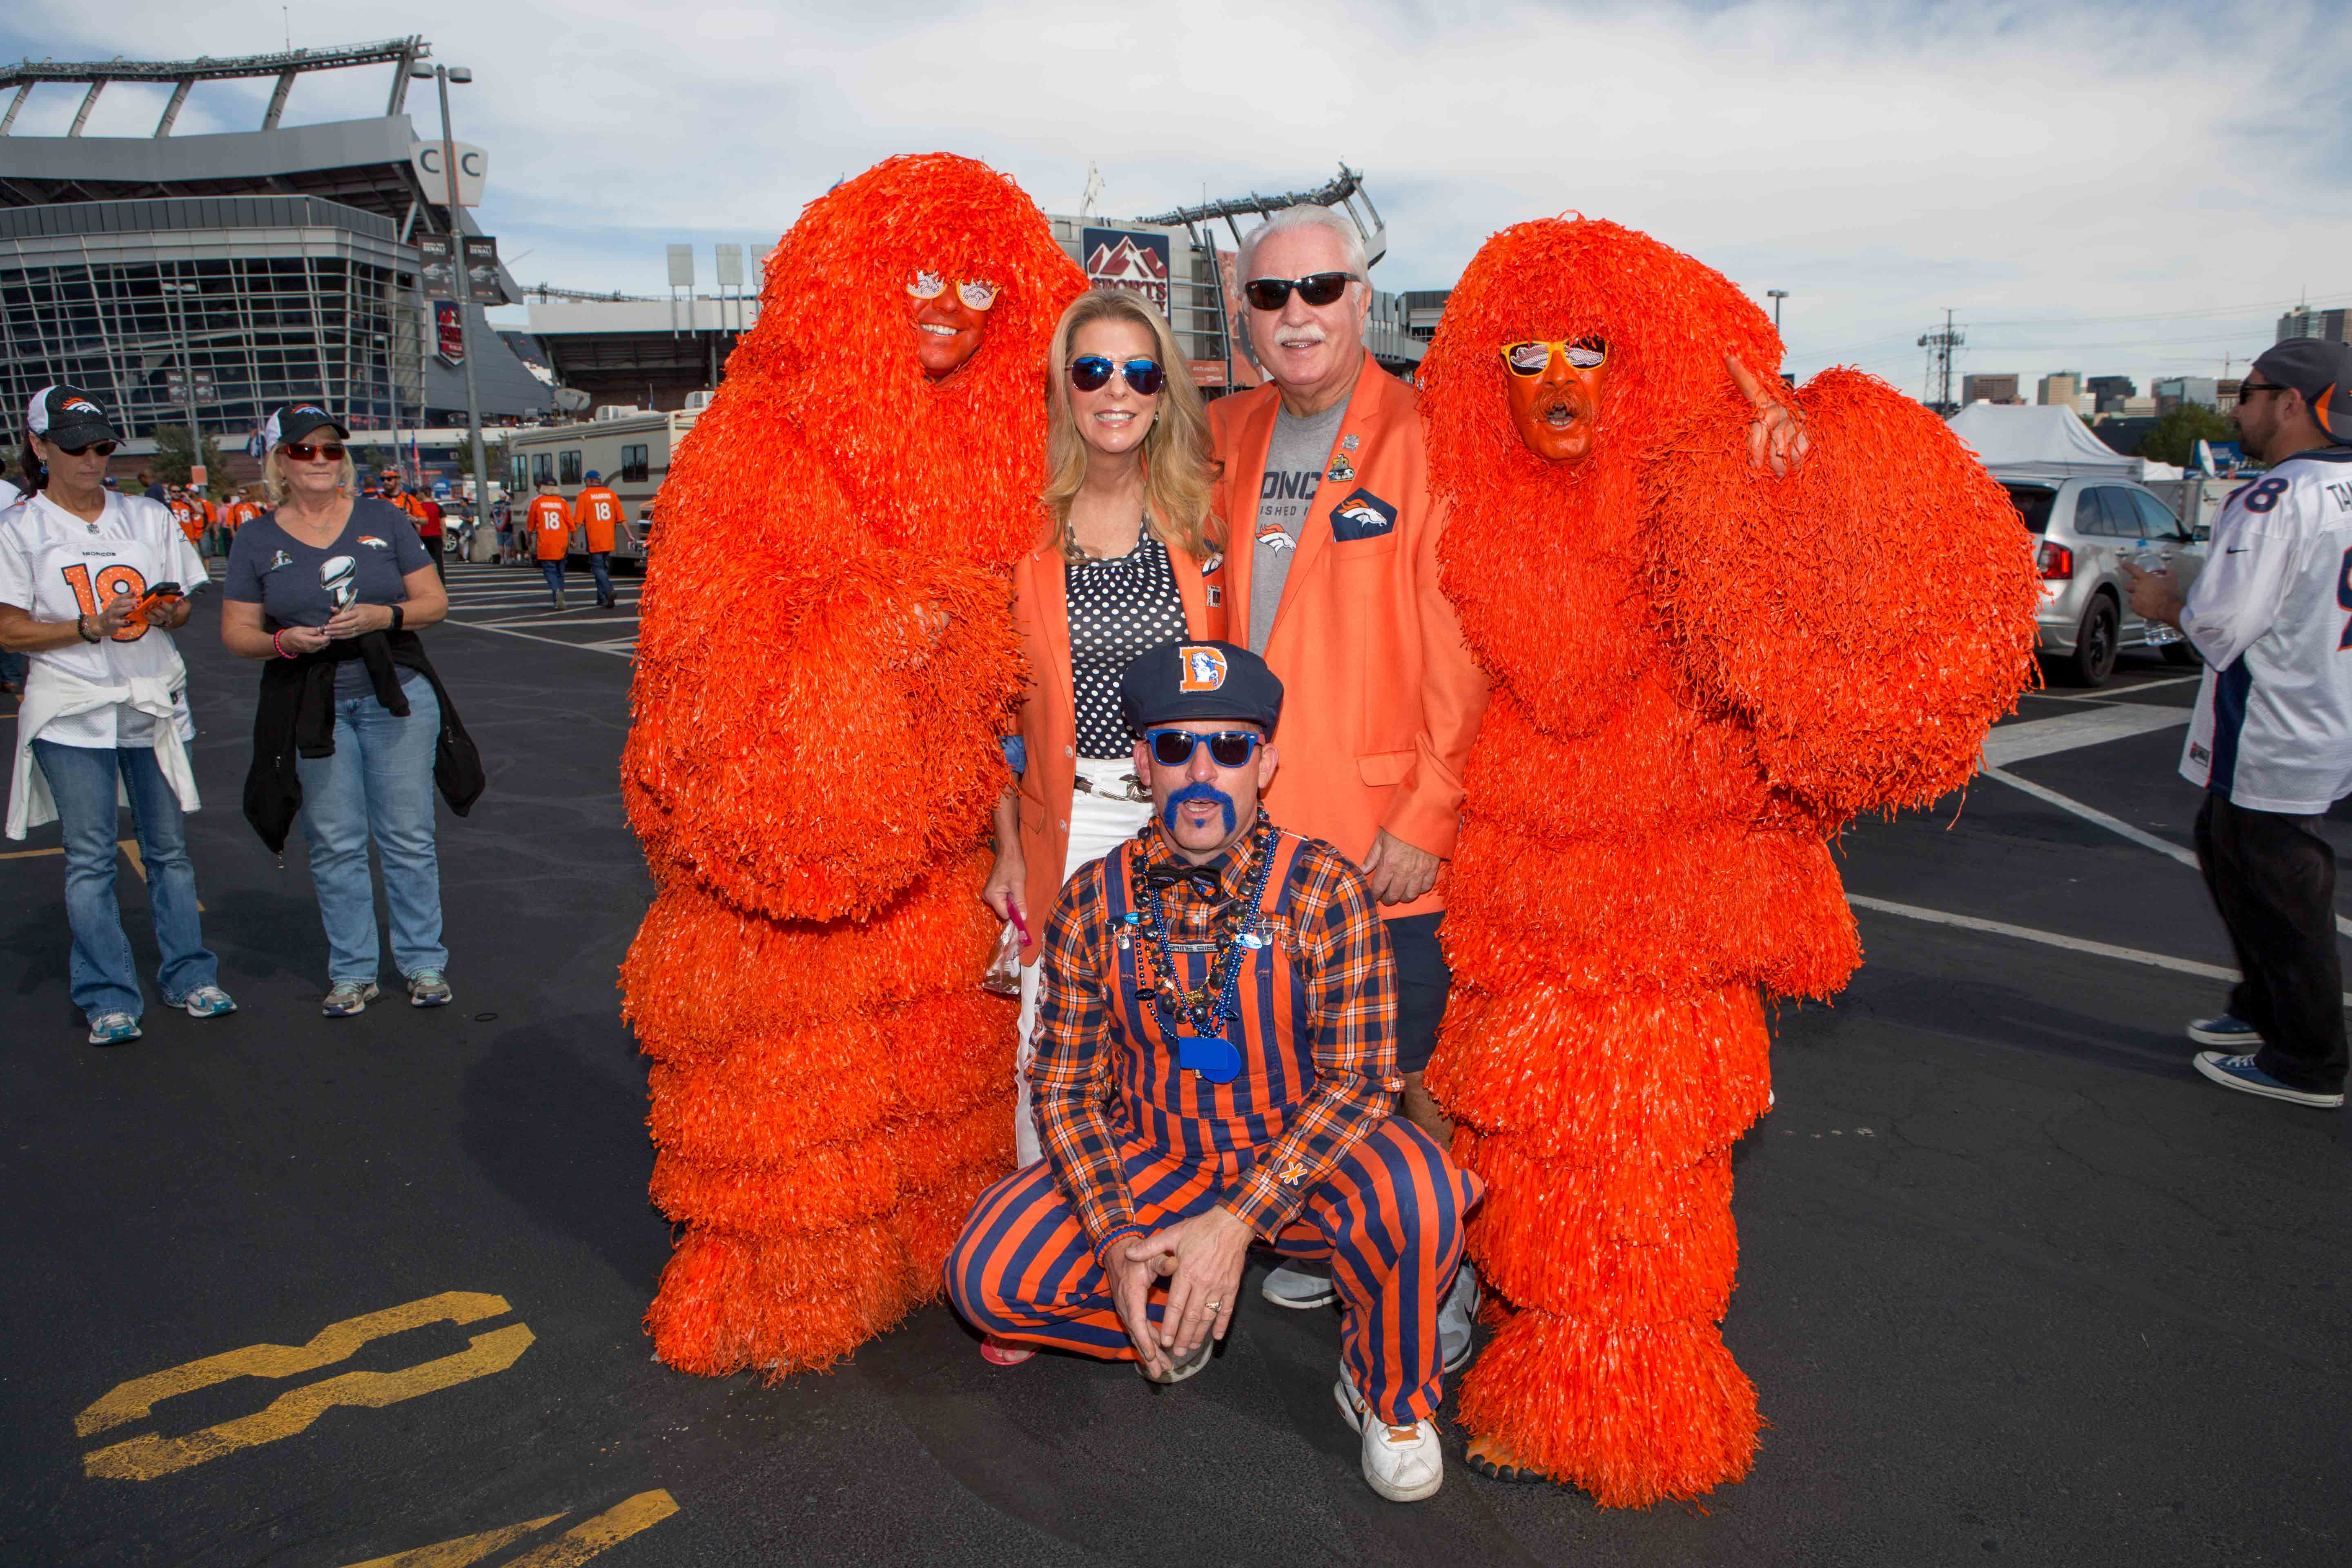 If you have been to any tailgate in the last 10 years you have probably seen these two -- walking around in their homemade pom pom get-ups.